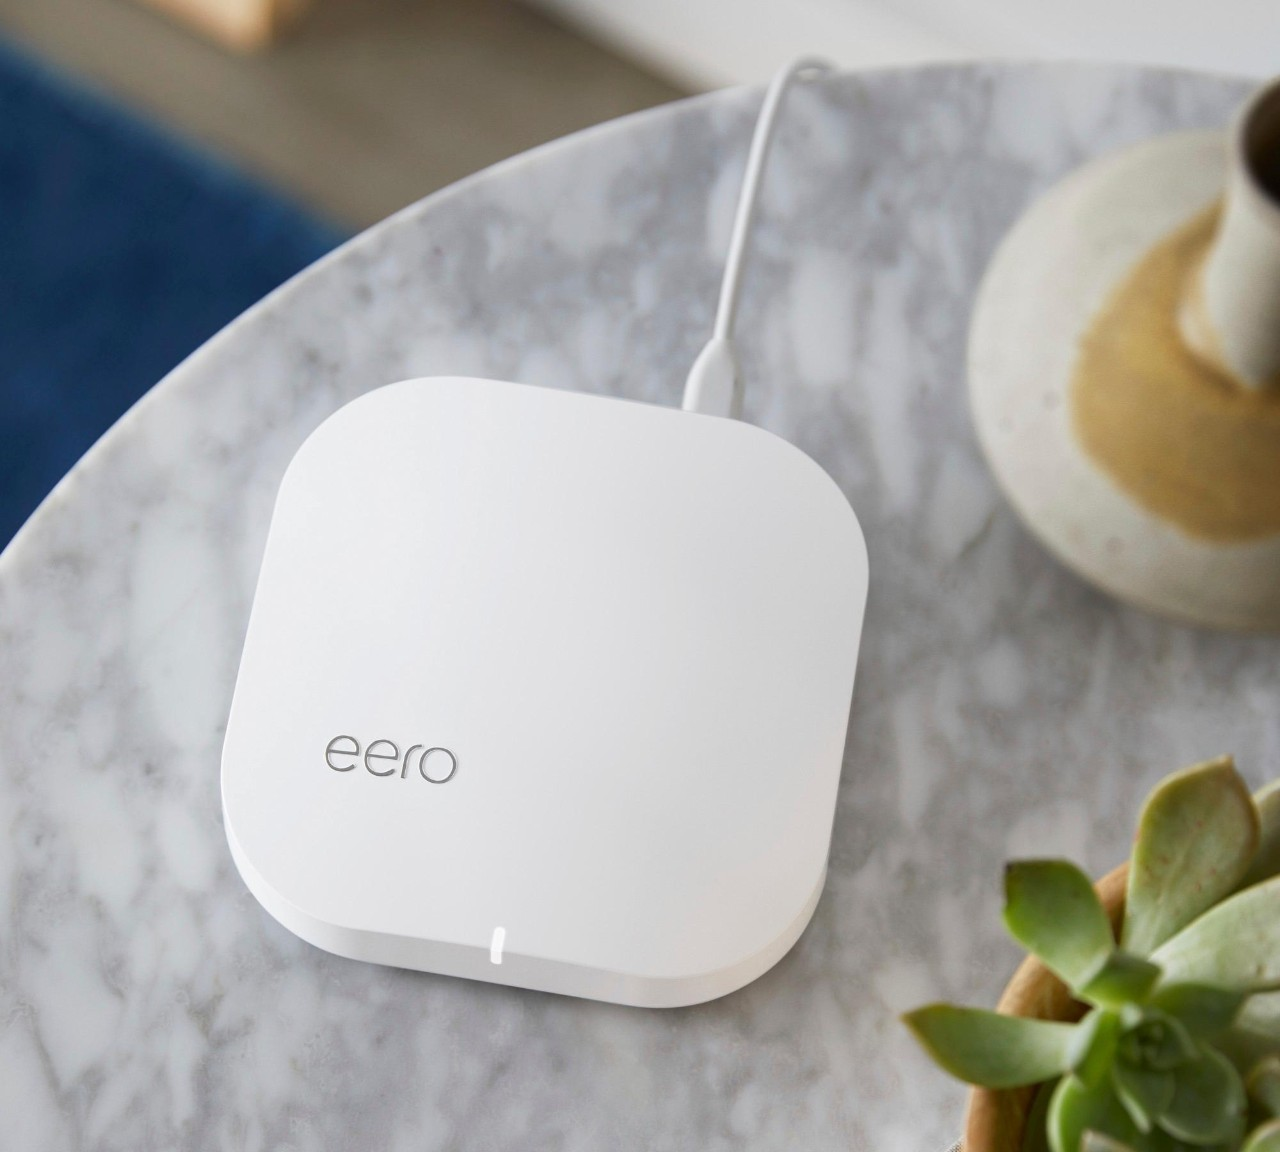 Eero is a great WiFi extender